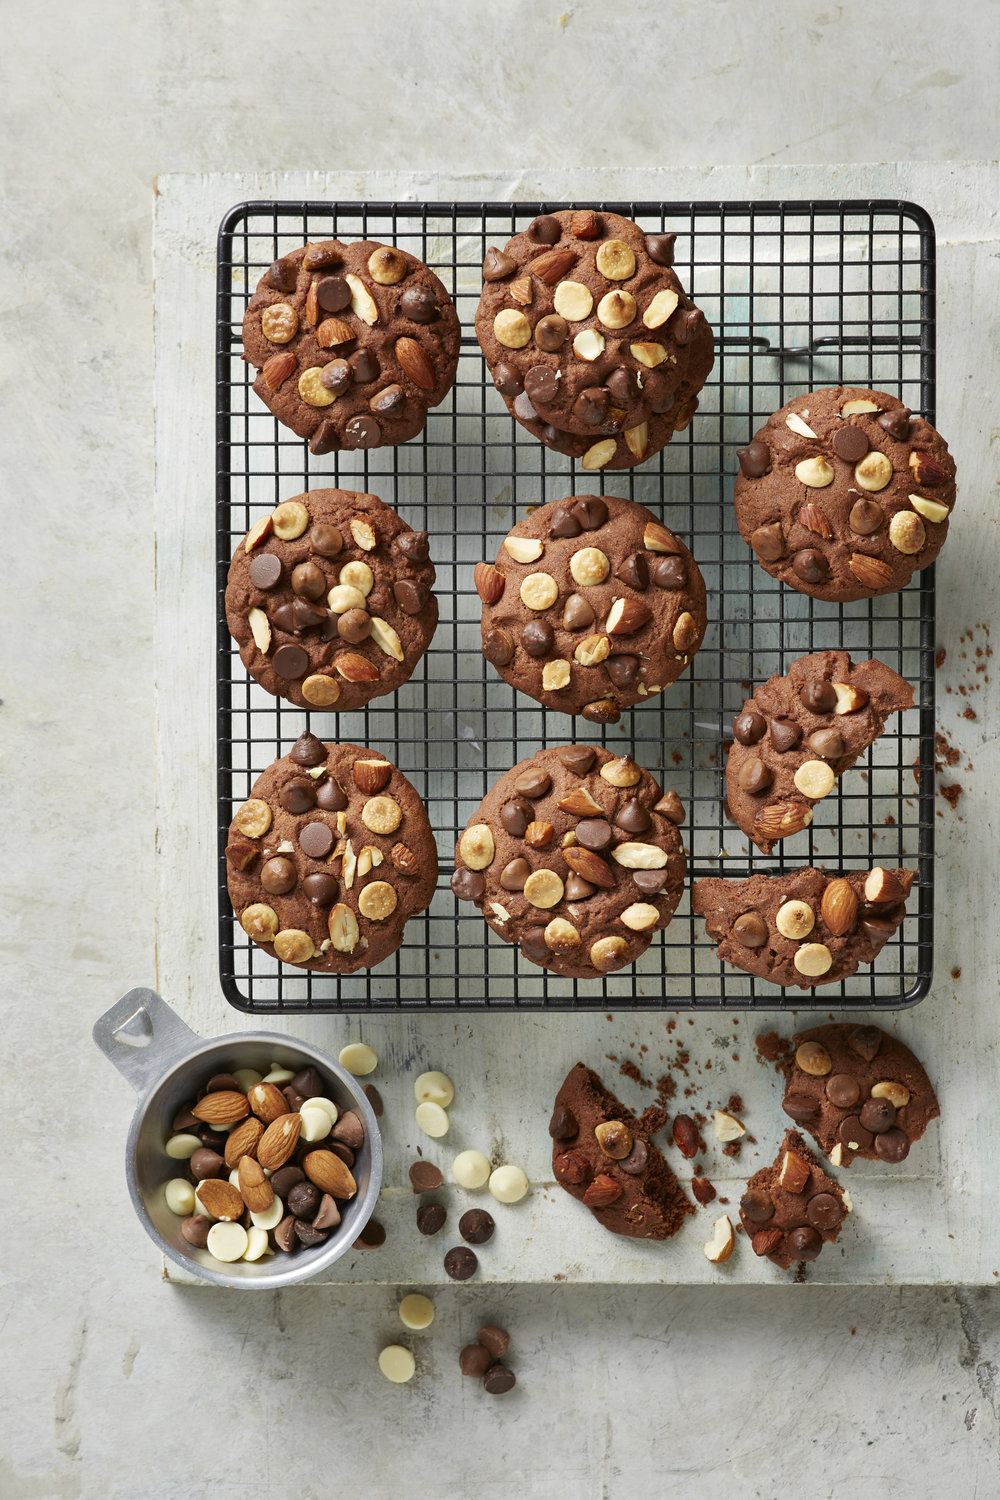 Triple choc almond cookies 20171027_0045.jpg